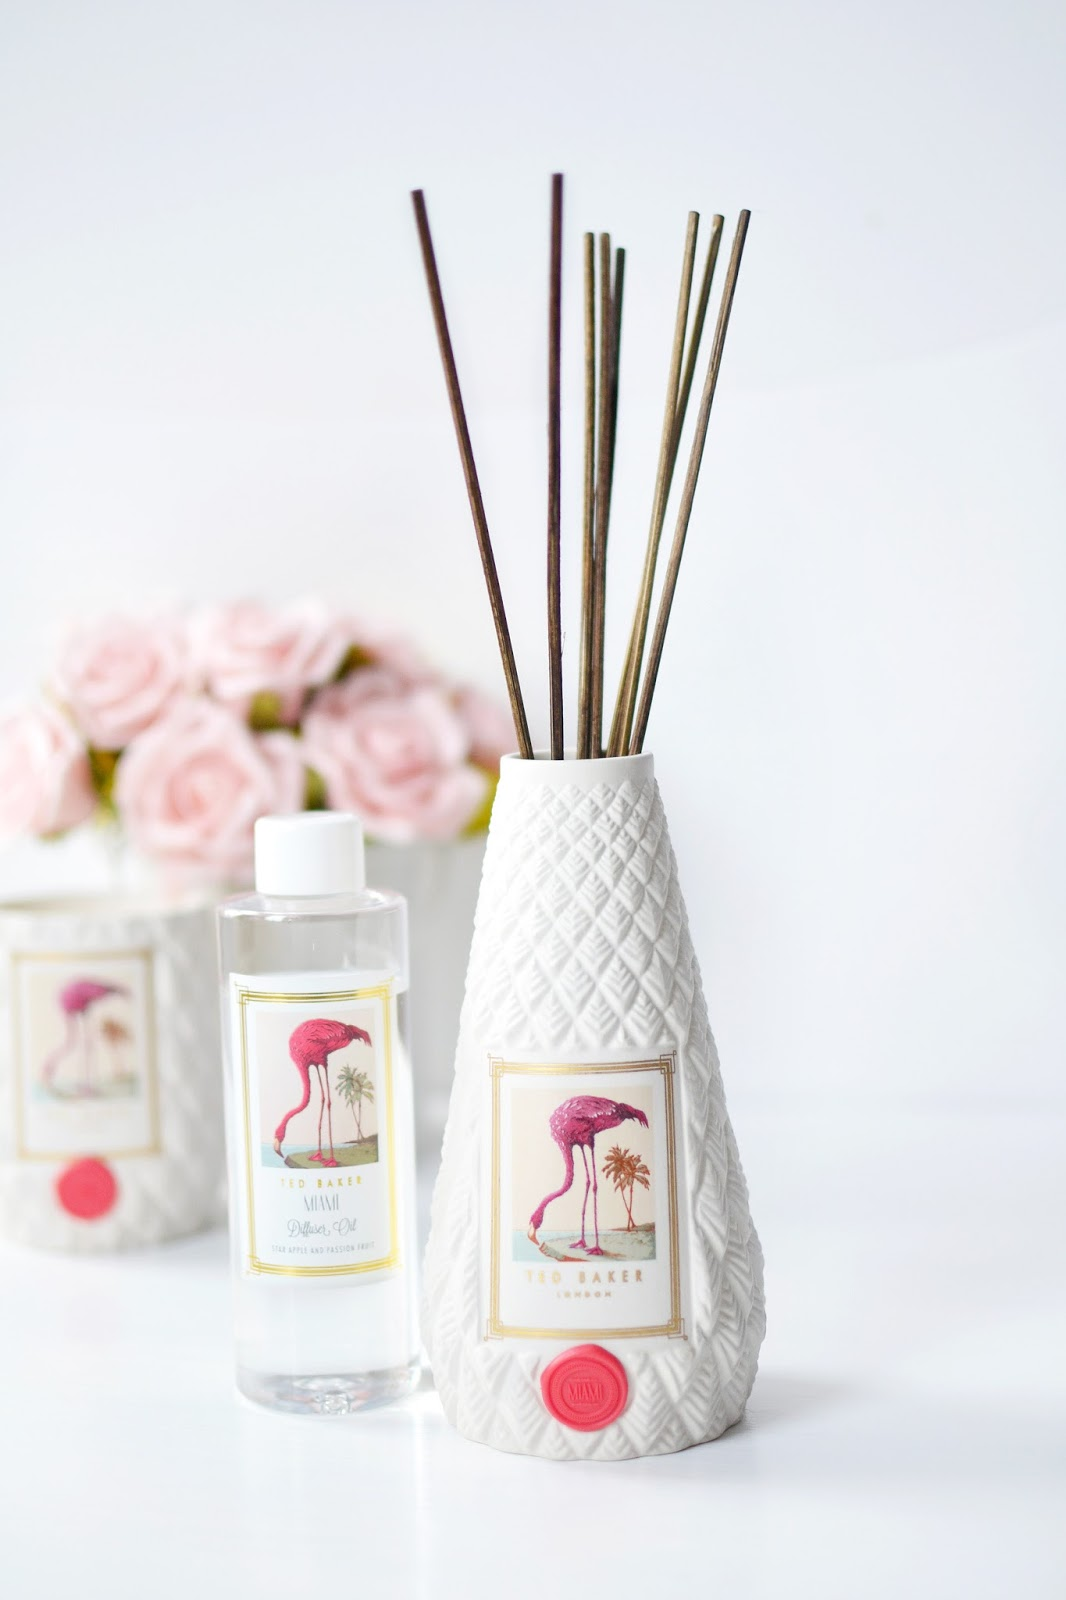 ted baker reed diffuser, ted baker miami